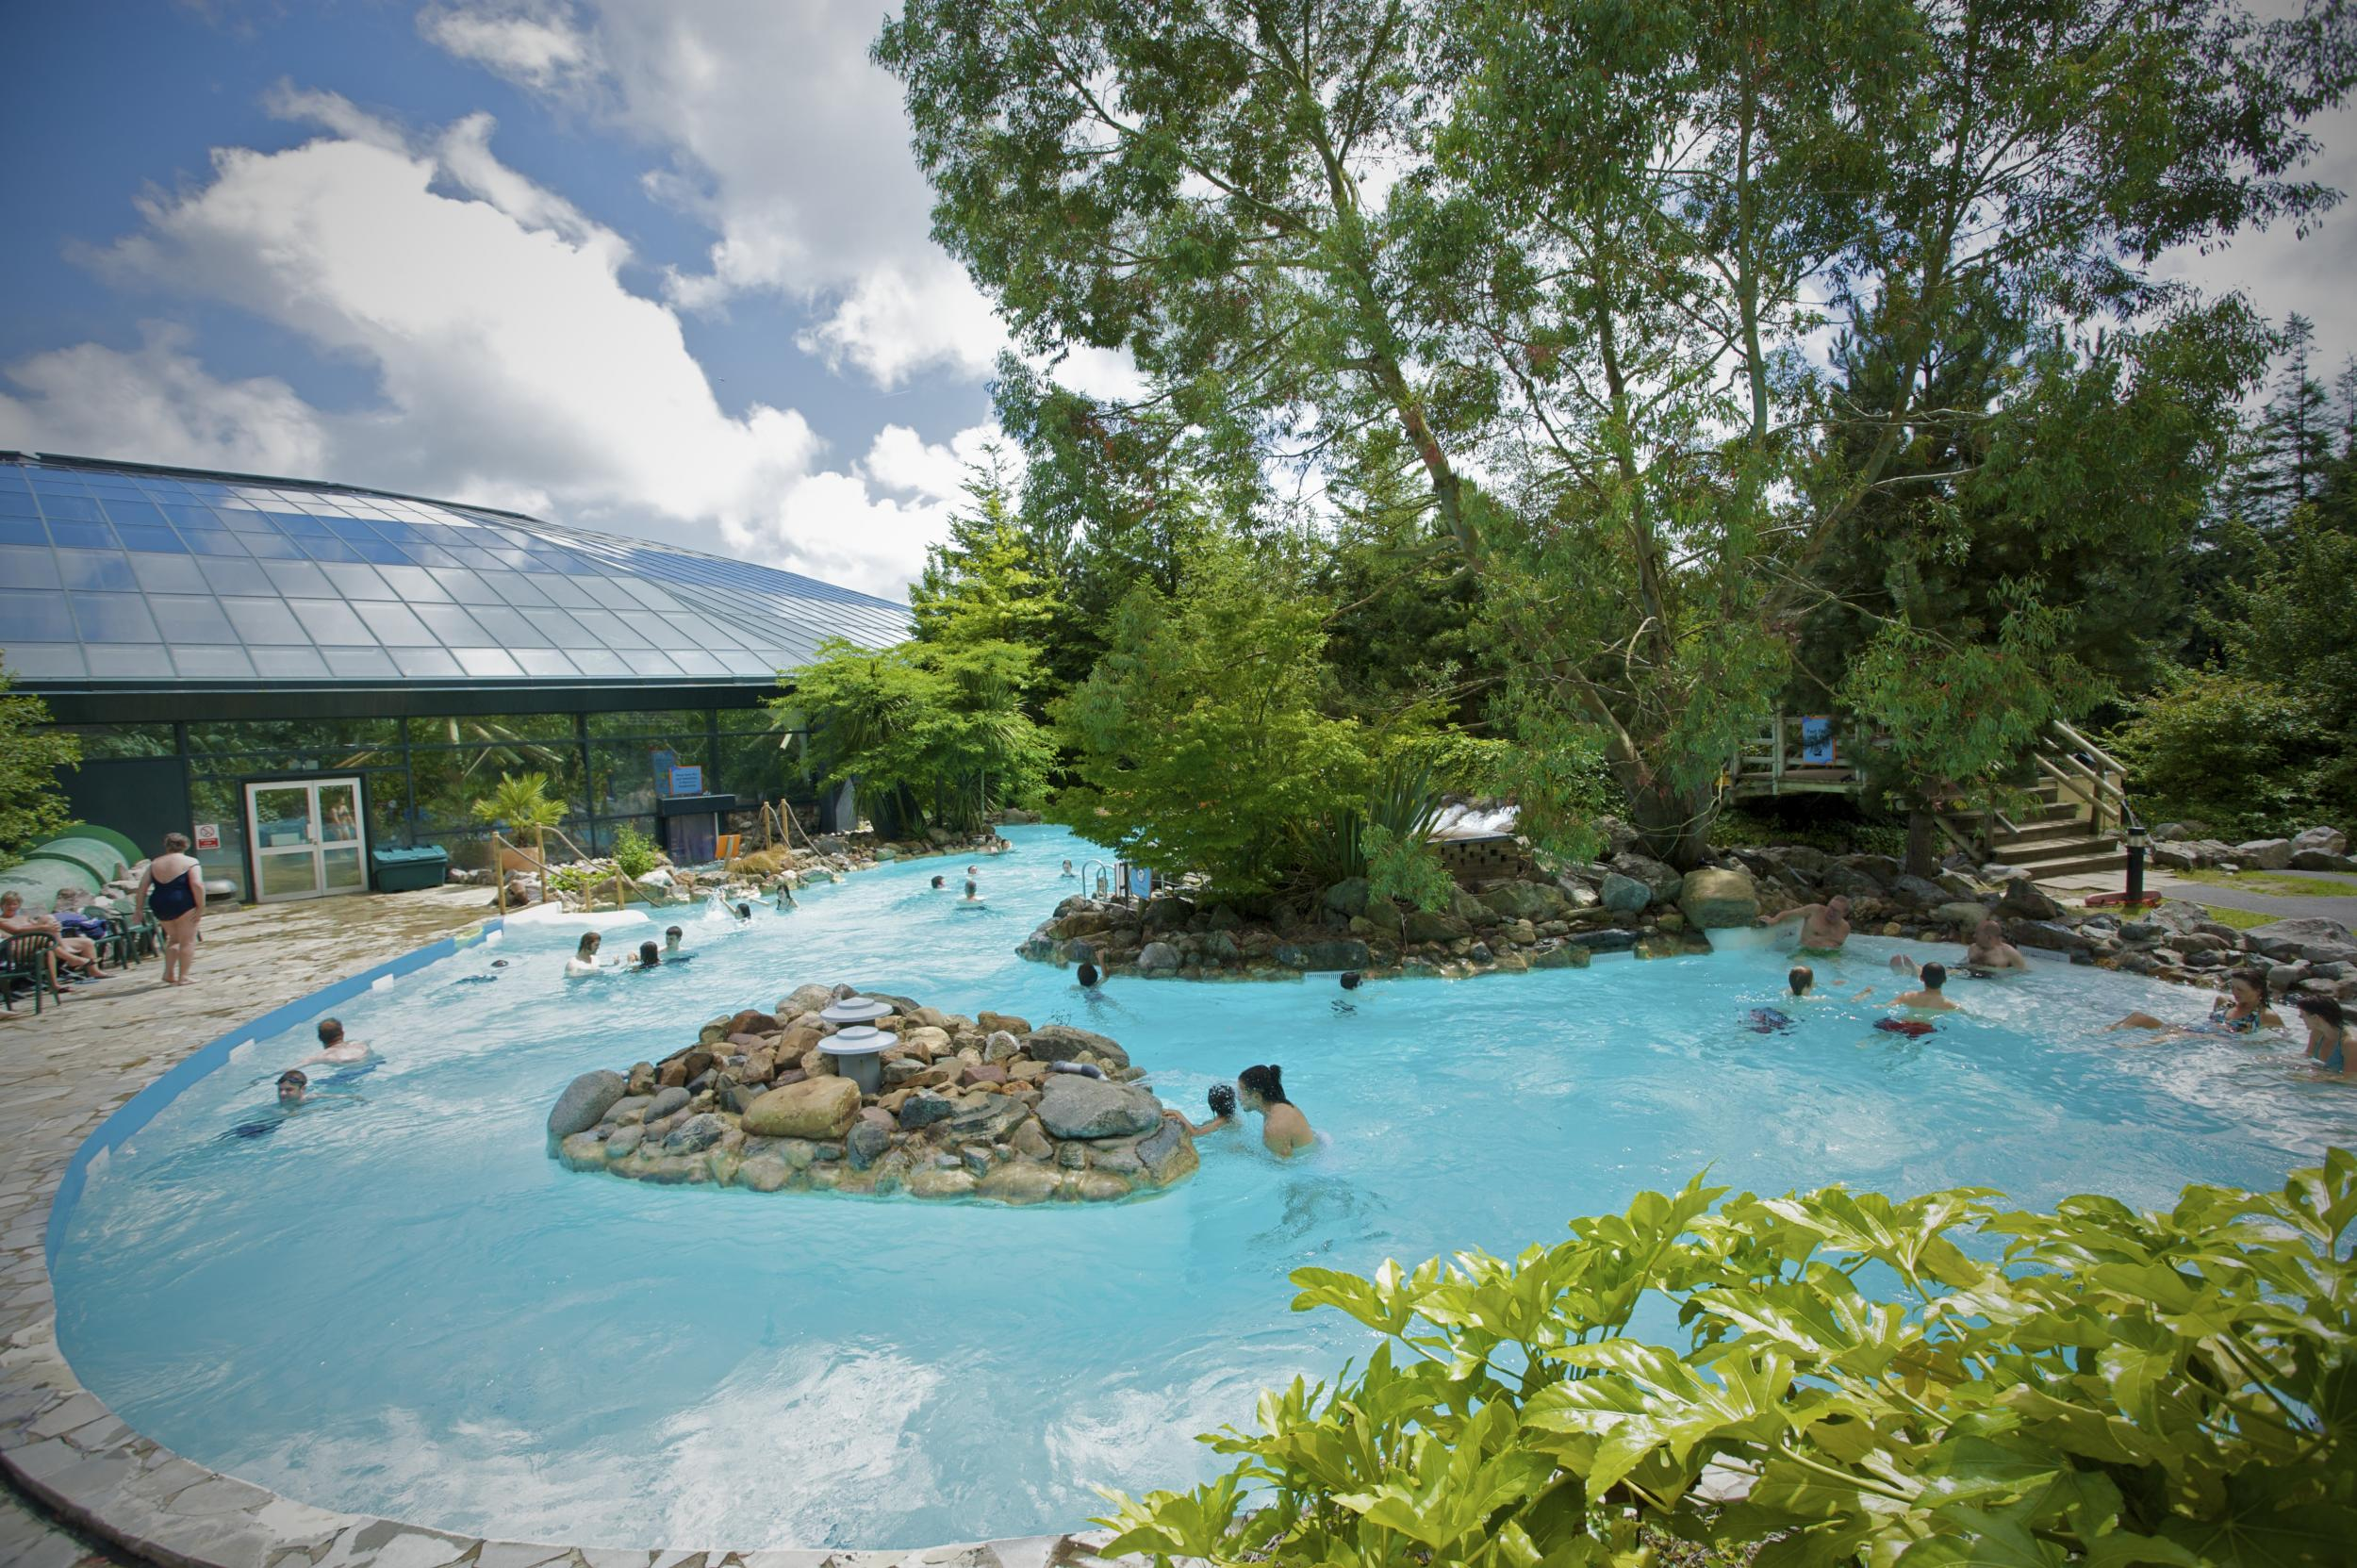 Center Parcs Under Fire After Closing 39 Unmissable 39 Attraction Without Clear Warning The